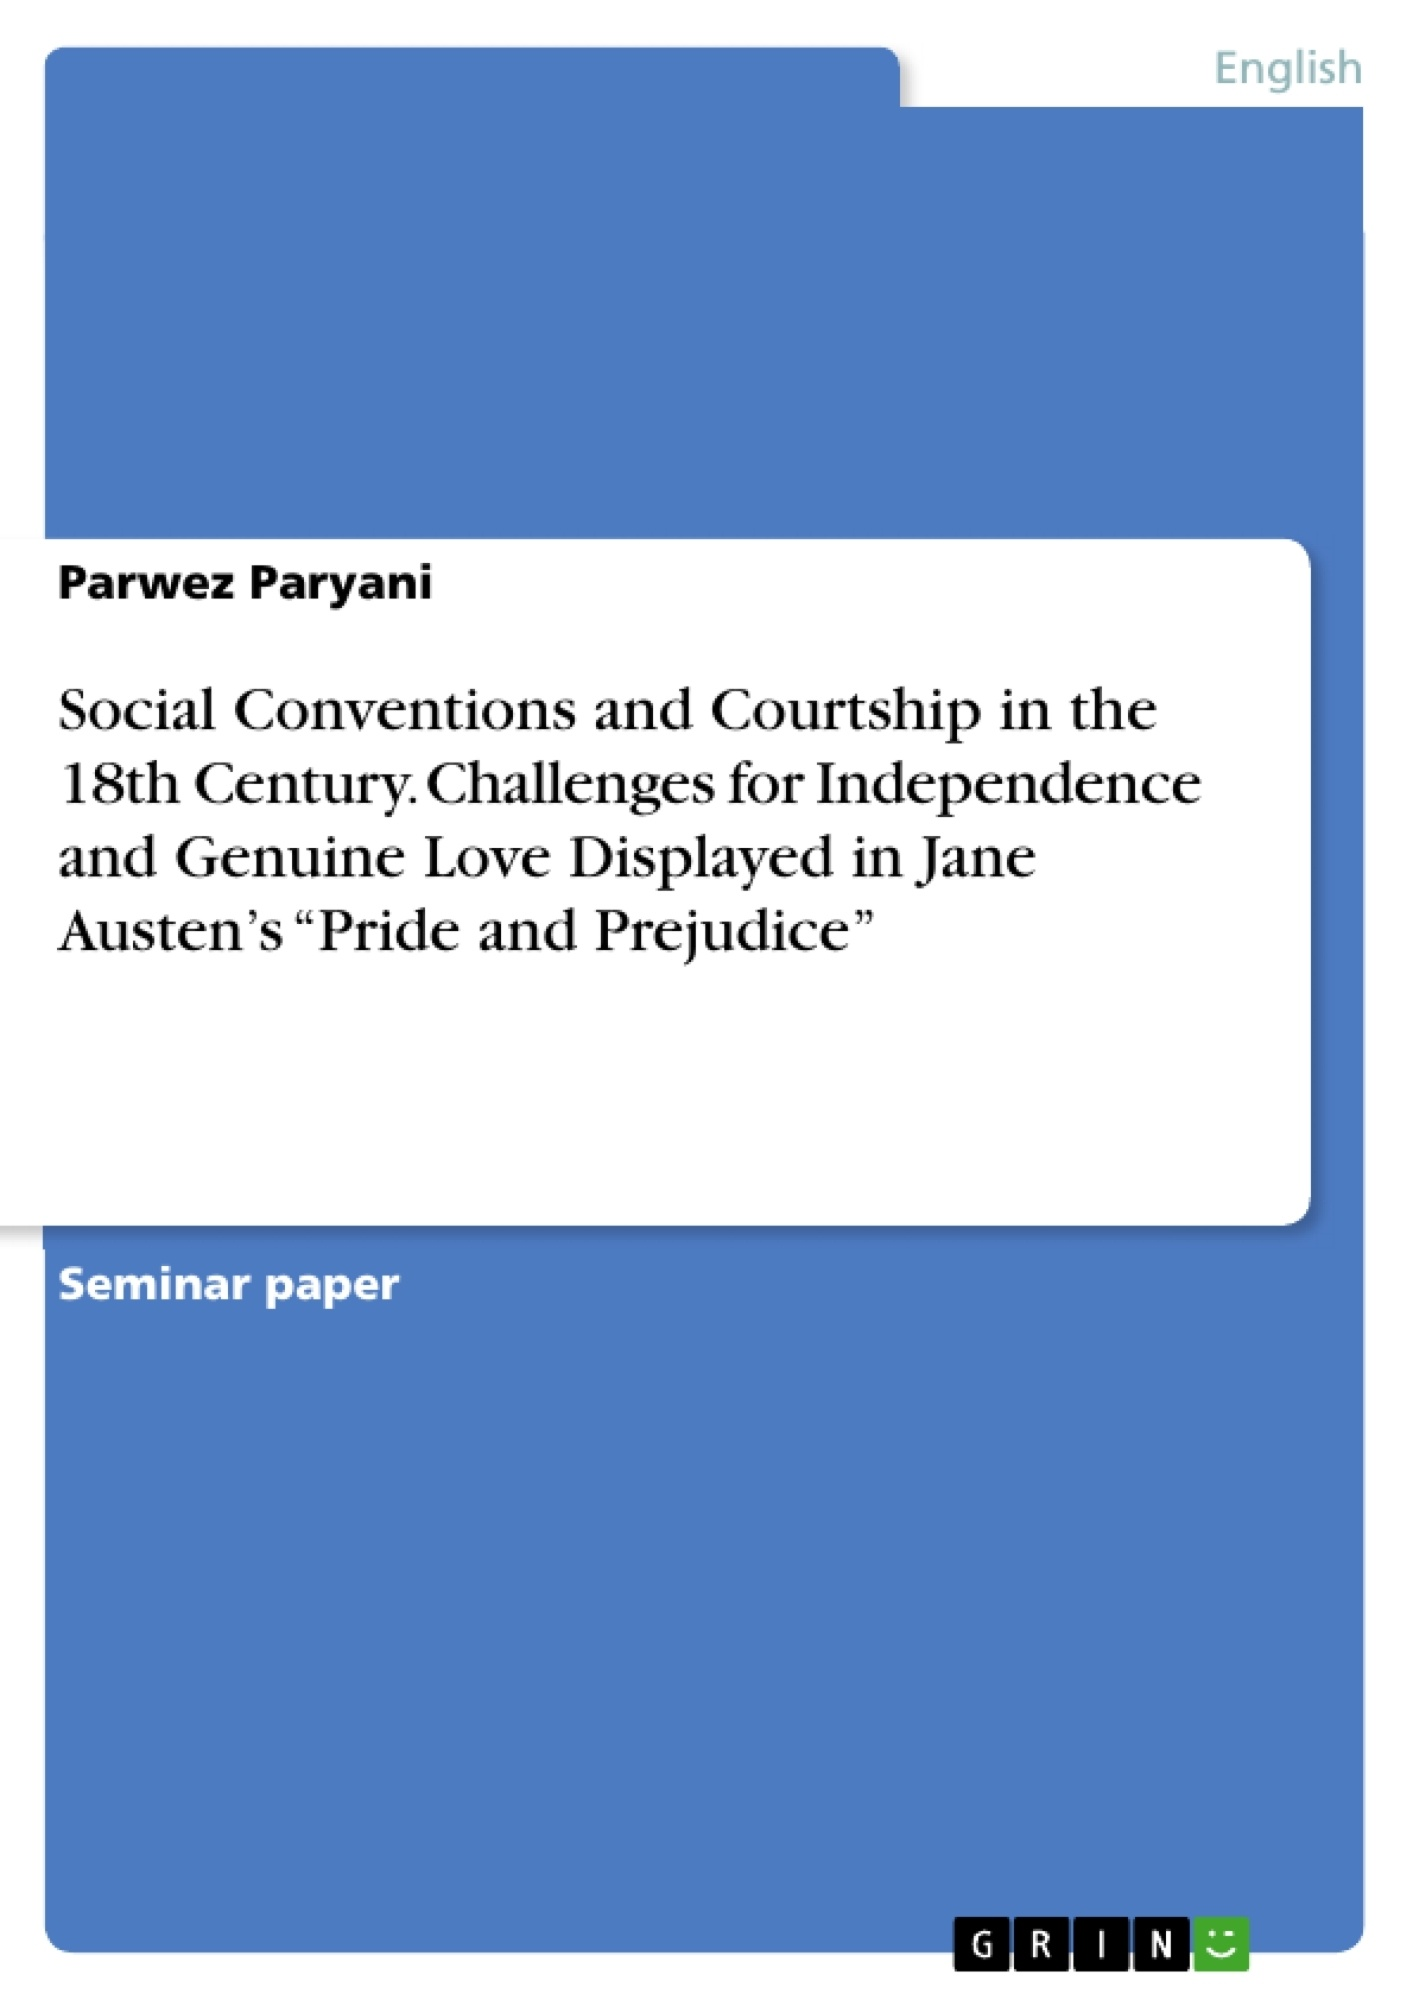 """Title: Social Conventions and Courtship in the 18th Century. Challenges for Independence and Genuine Love Displayed in Jane Austen's """"Pride and Prejudice"""""""